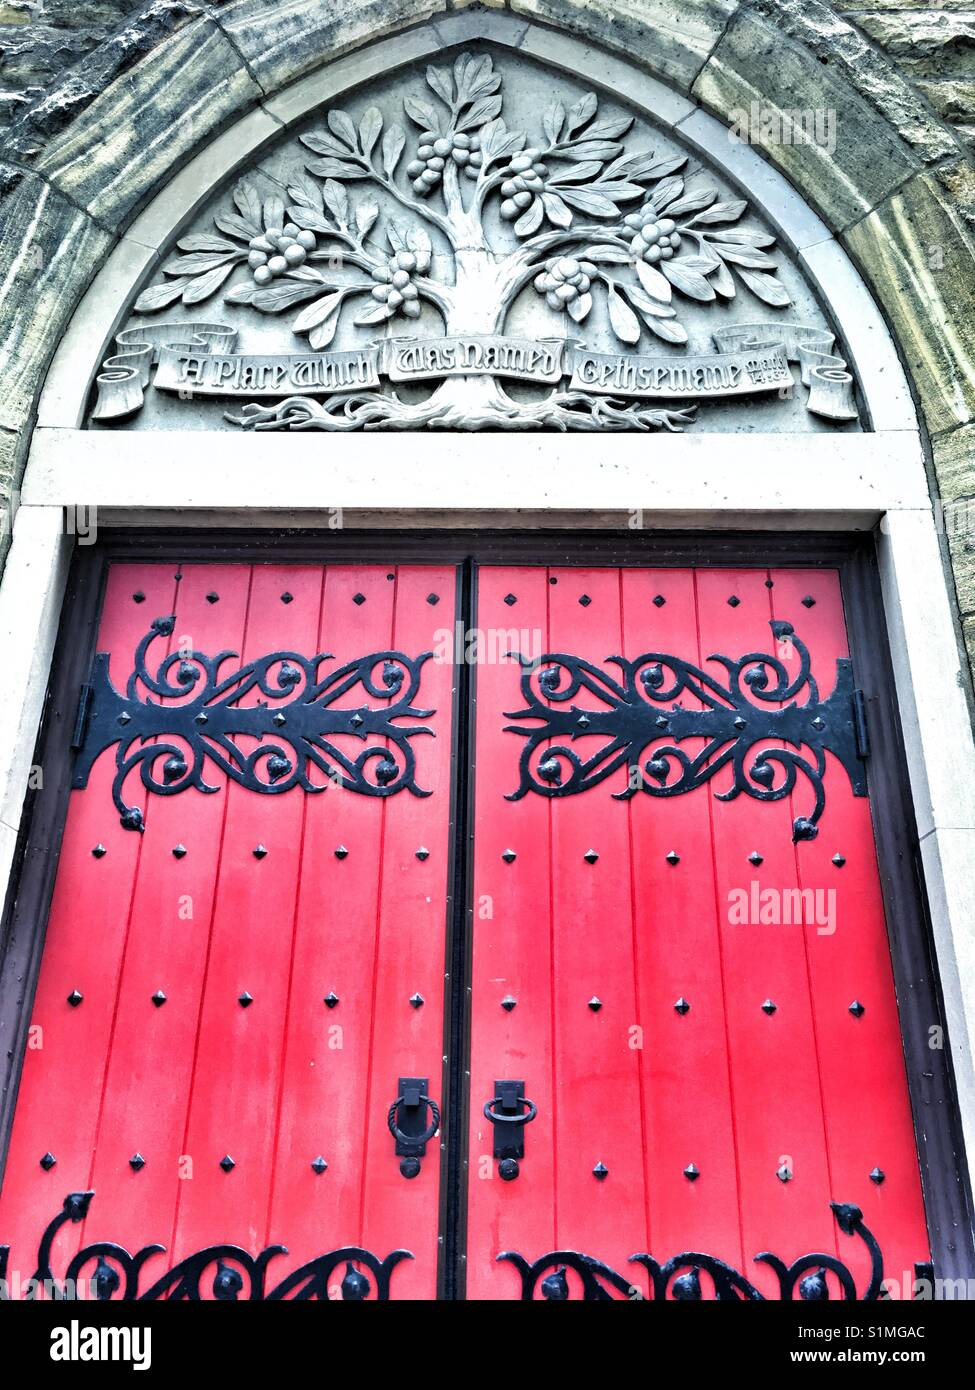 Old door with wrought iron decor - Stock Image